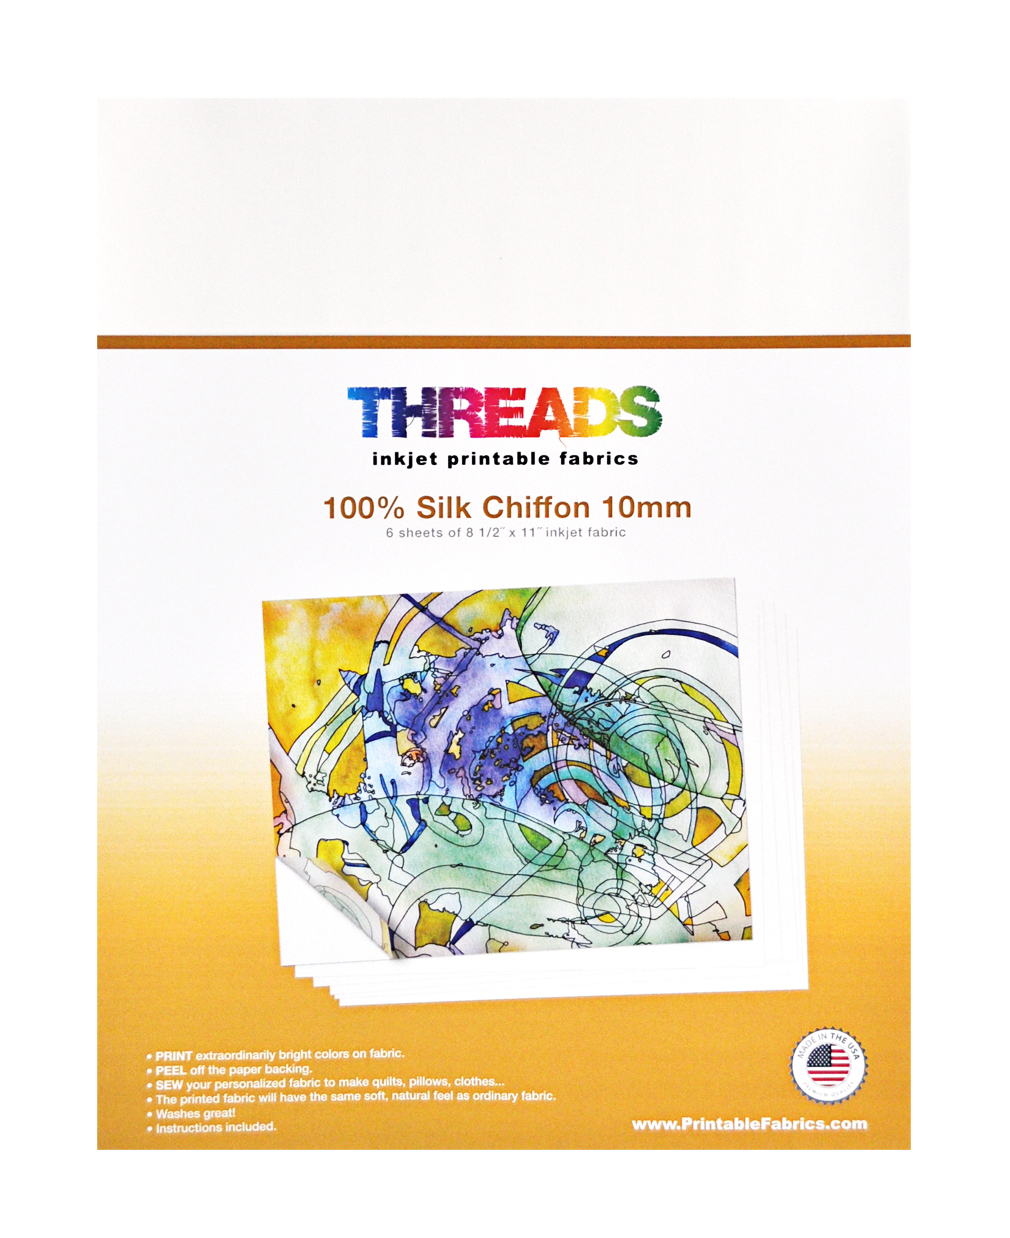 threads 6 sheets of silk chiffon 8 1 2in x 11in inkjet printable fabrics